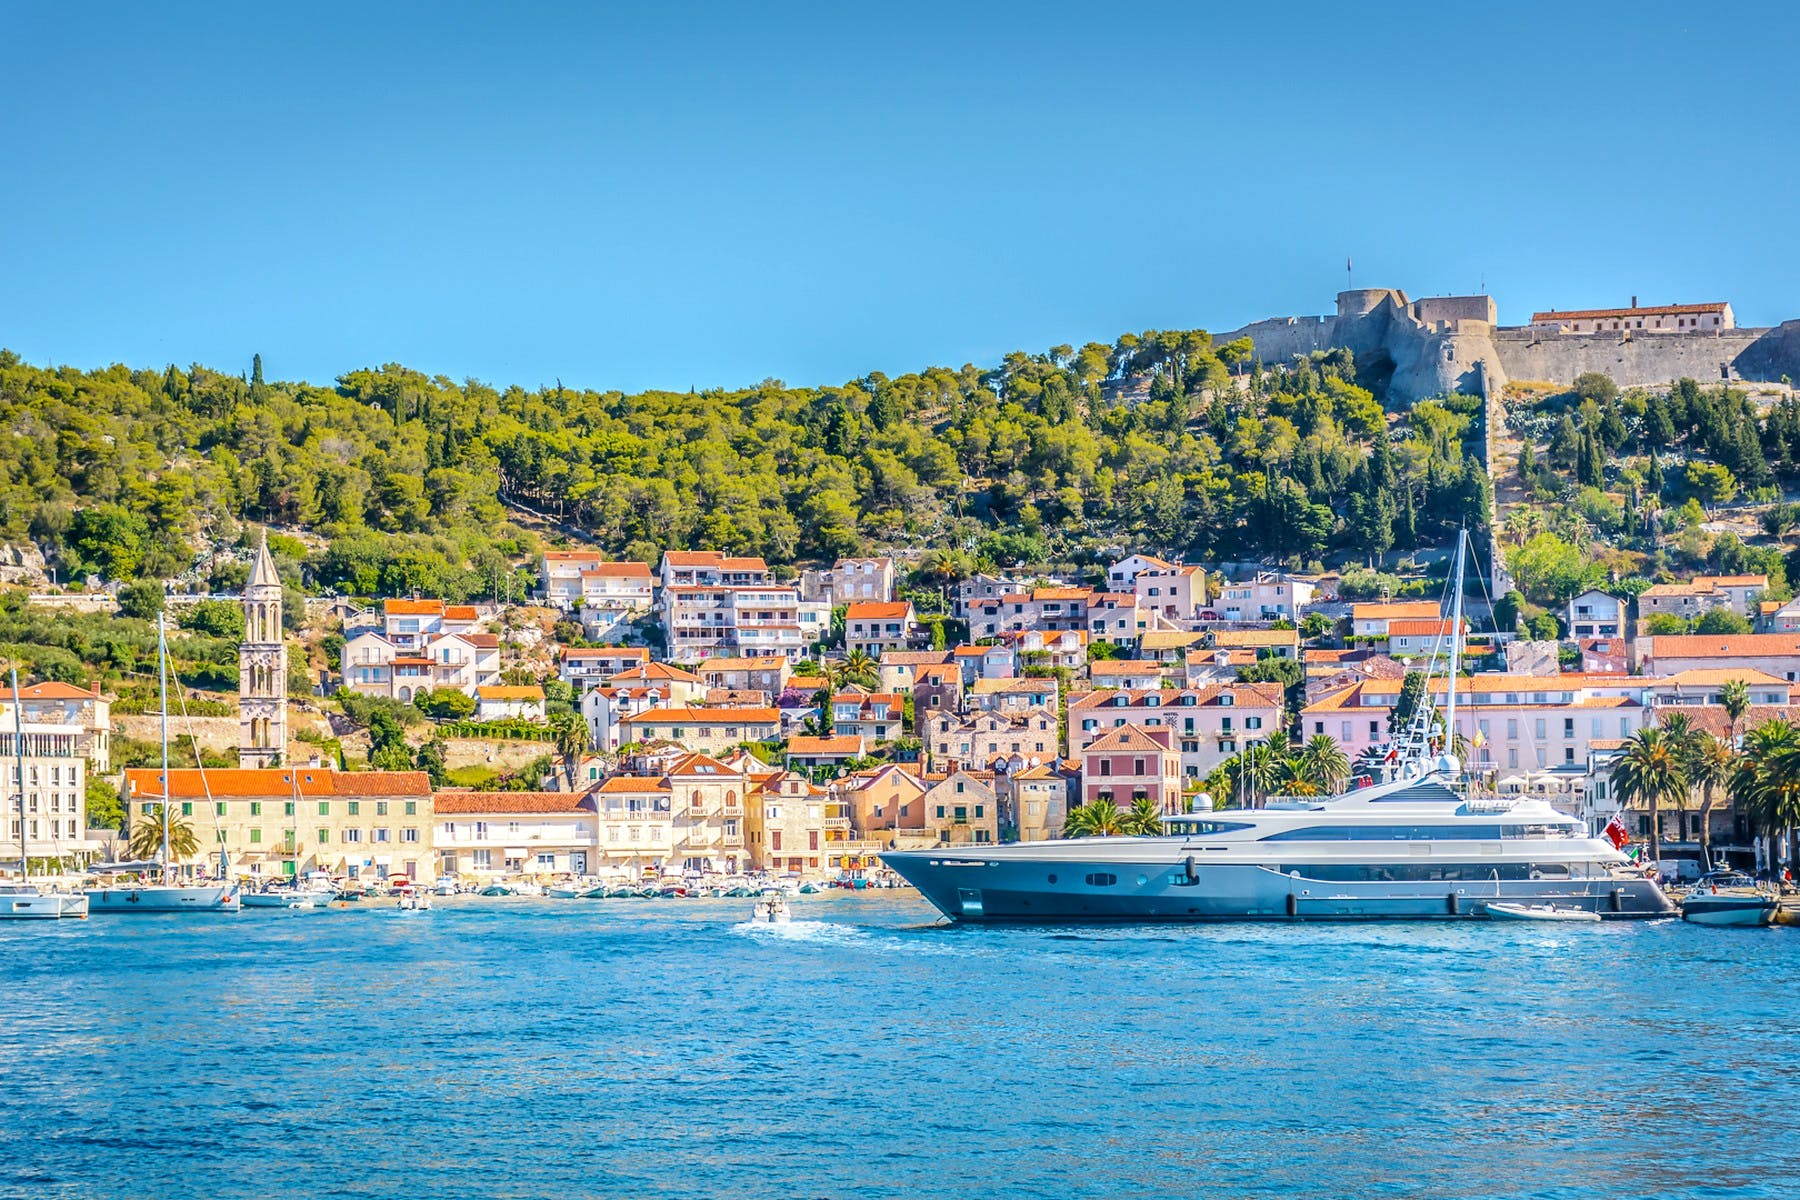 The view of beautiful Hvar city